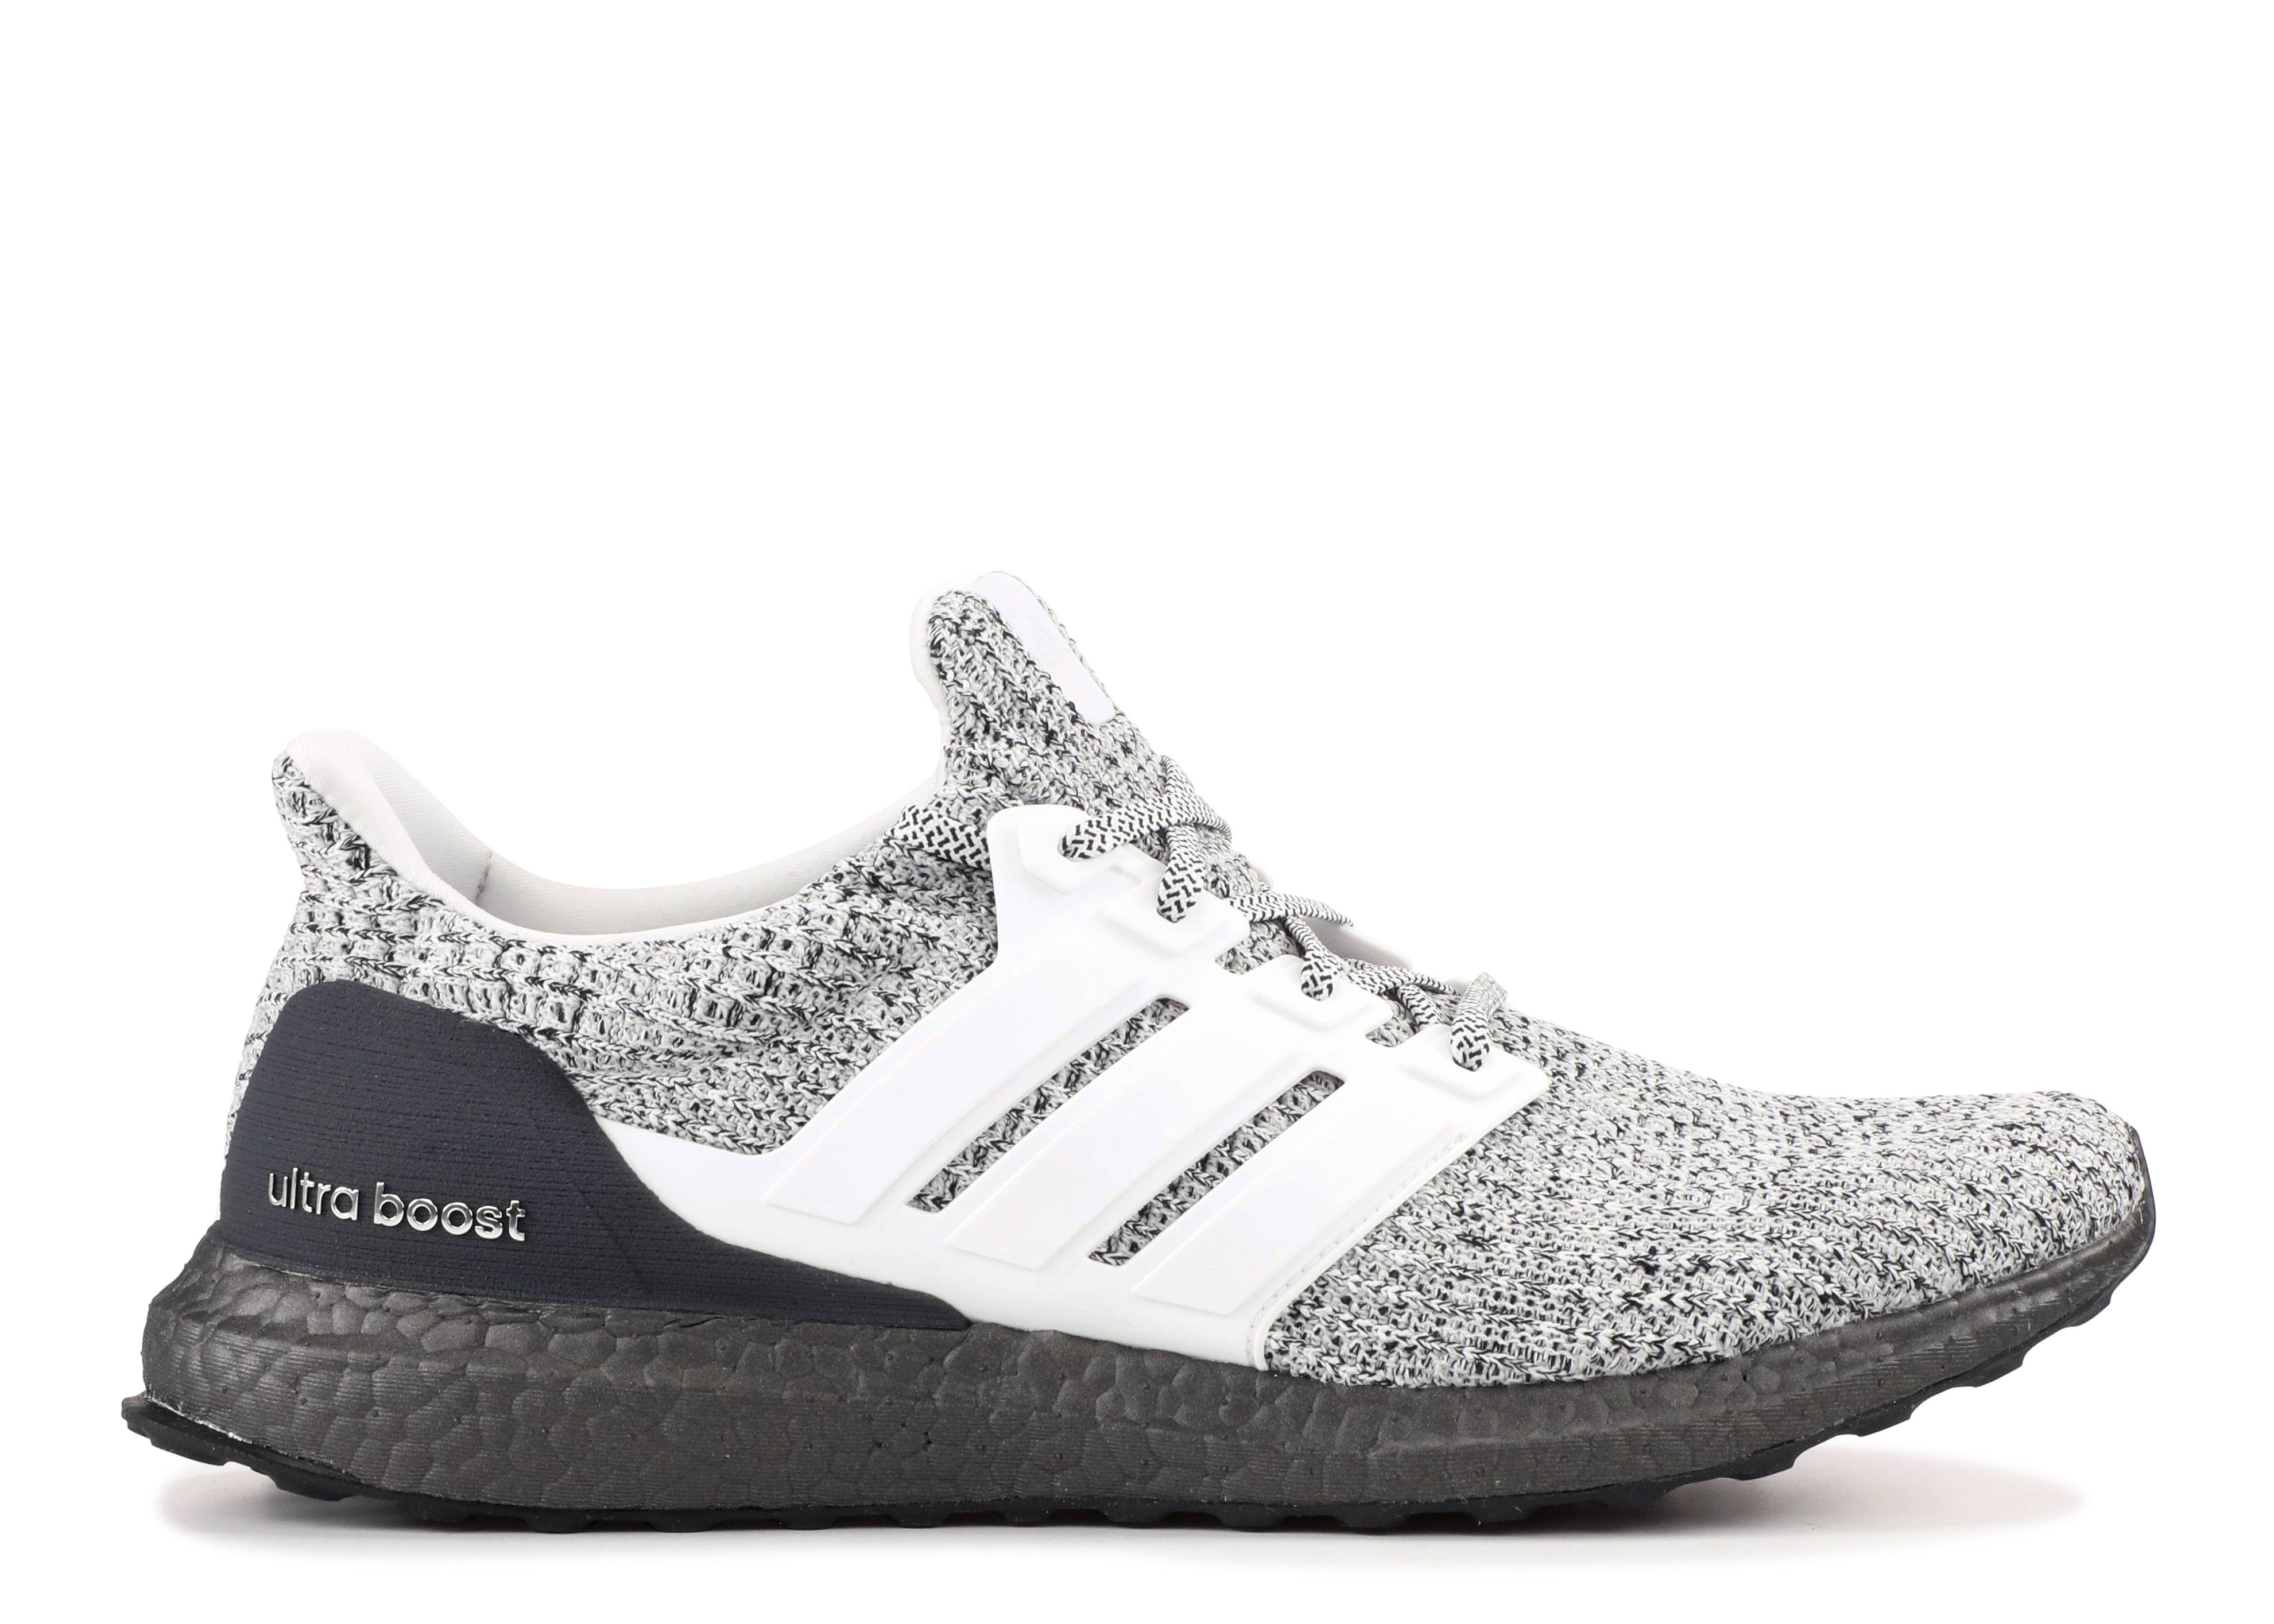 e960bf98a4f Adidas Ultra Boost 4.0 Cookies And Cream - 0